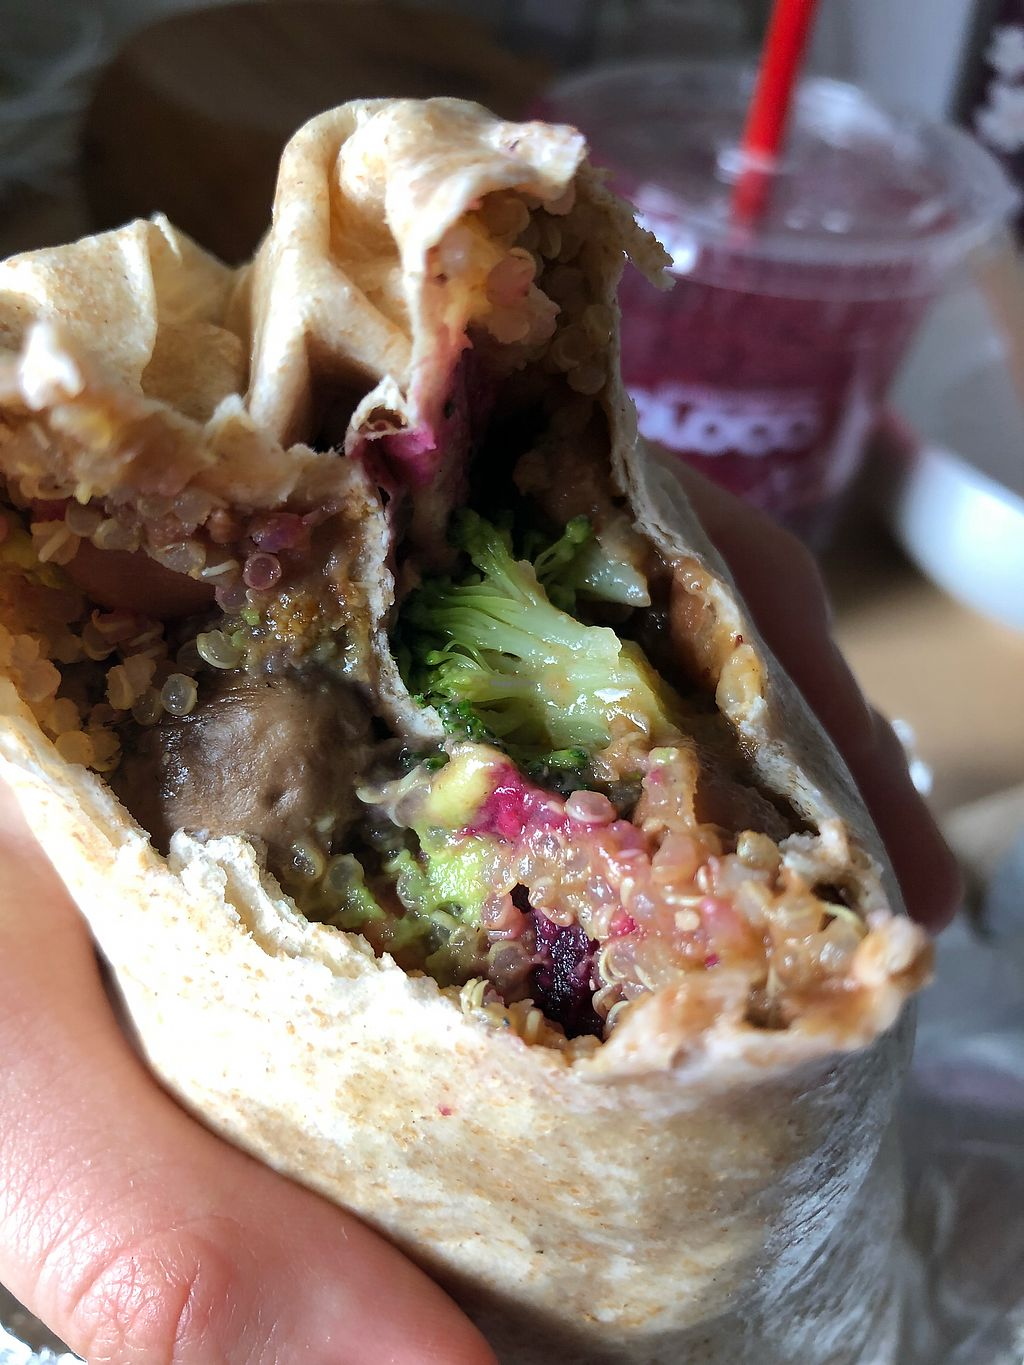 """Photo of Boloco  by <a href=""""/members/profile/Tamy"""">Tamy</a> <br/>Vegan burrito <br/> March 25, 2018  - <a href='/contact/abuse/image/115566/375610'>Report</a>"""